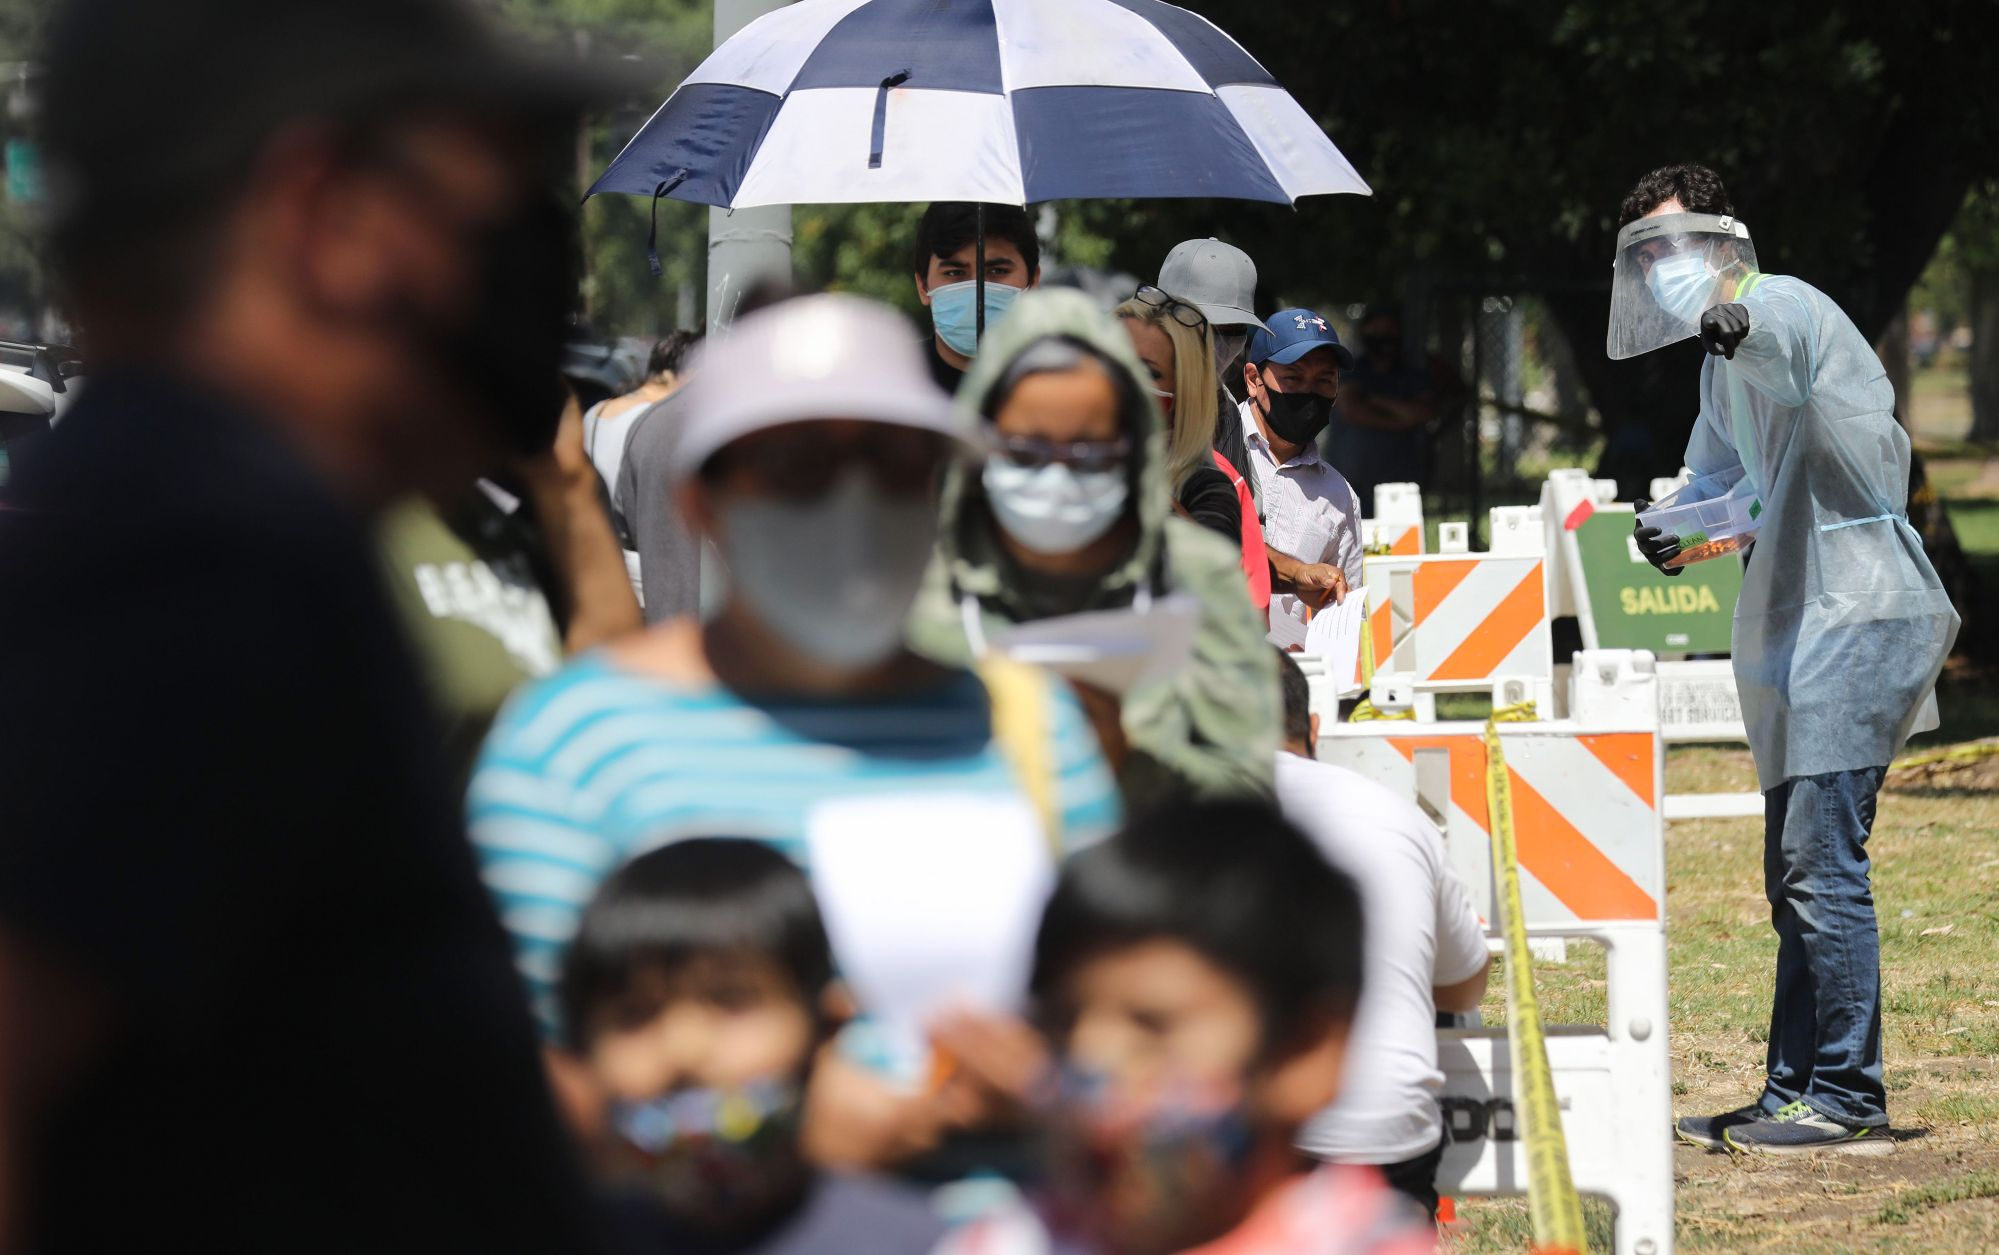 A COVID-19 testing associate dressed in personal protective equipment (PPE) assists people waiting in line at a testing center at Lincoln Park amid the coronavirus pandemic on July 07, 2020 in Los Angeles, California. (Mario Tama/Getty Images)